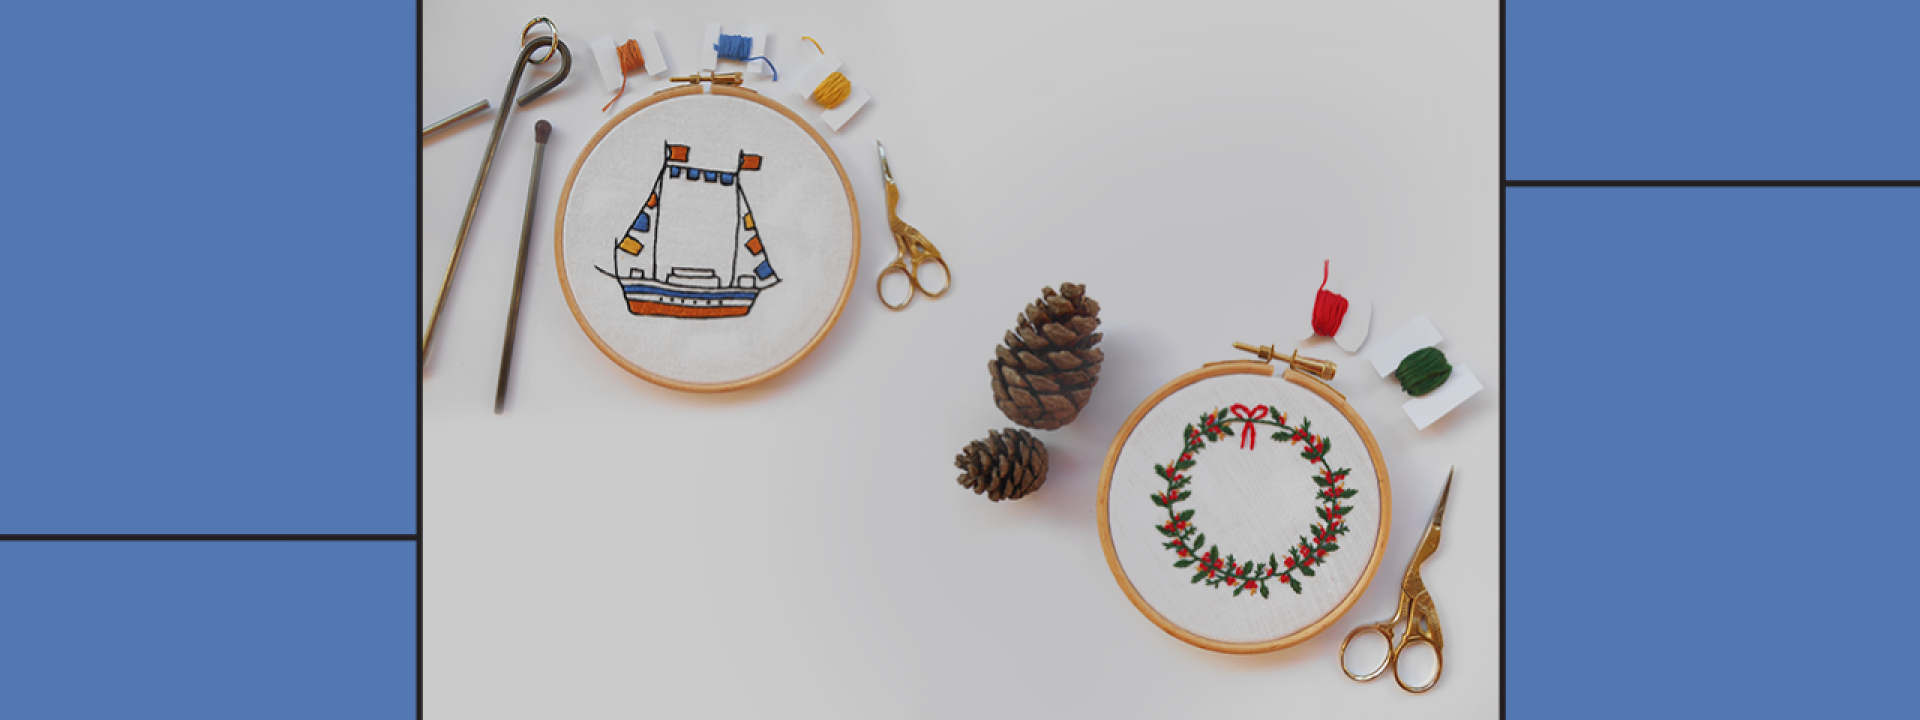 Creative Embroidery: Christmas stitches at the SNFCC - Εικόνα